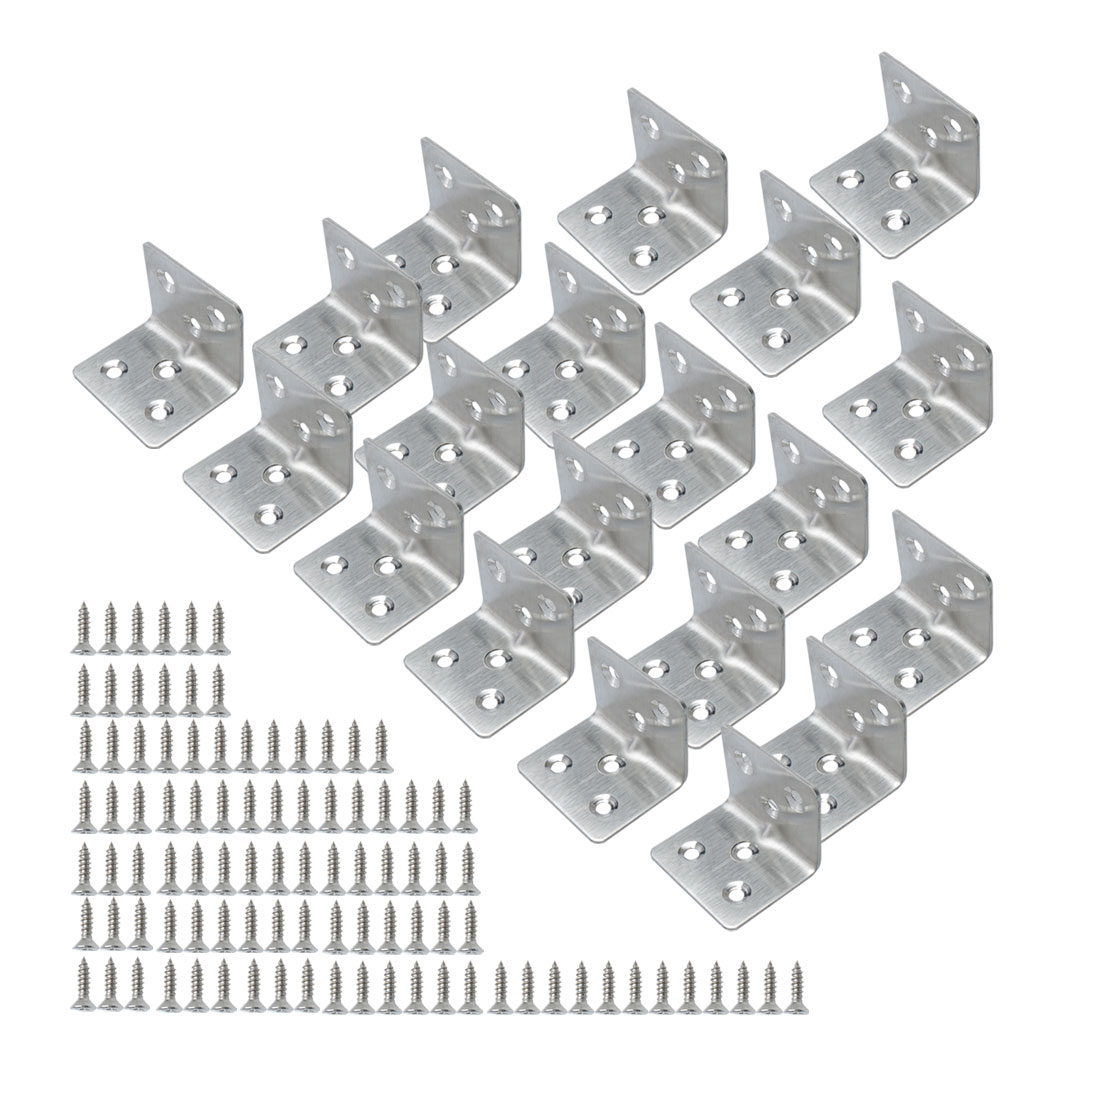 Angle Bracket Stainless Steel Brace Connection Fastener w Screw 40x40mm, 20pcs